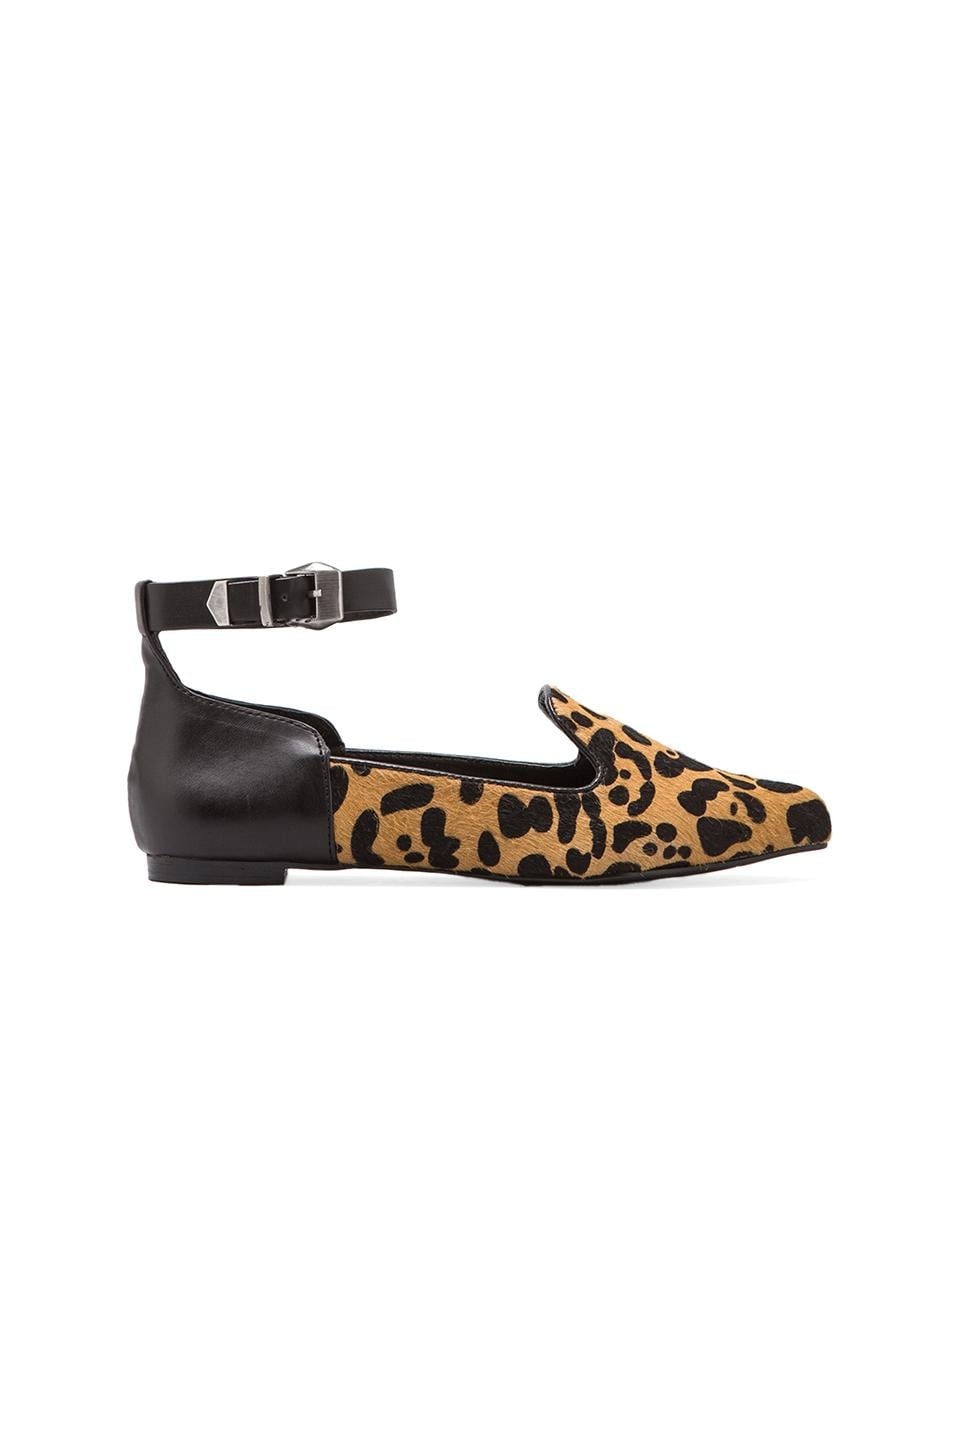 Kelsi Dagger Nitrogen Flat with Calf Hair in Leopard/Black